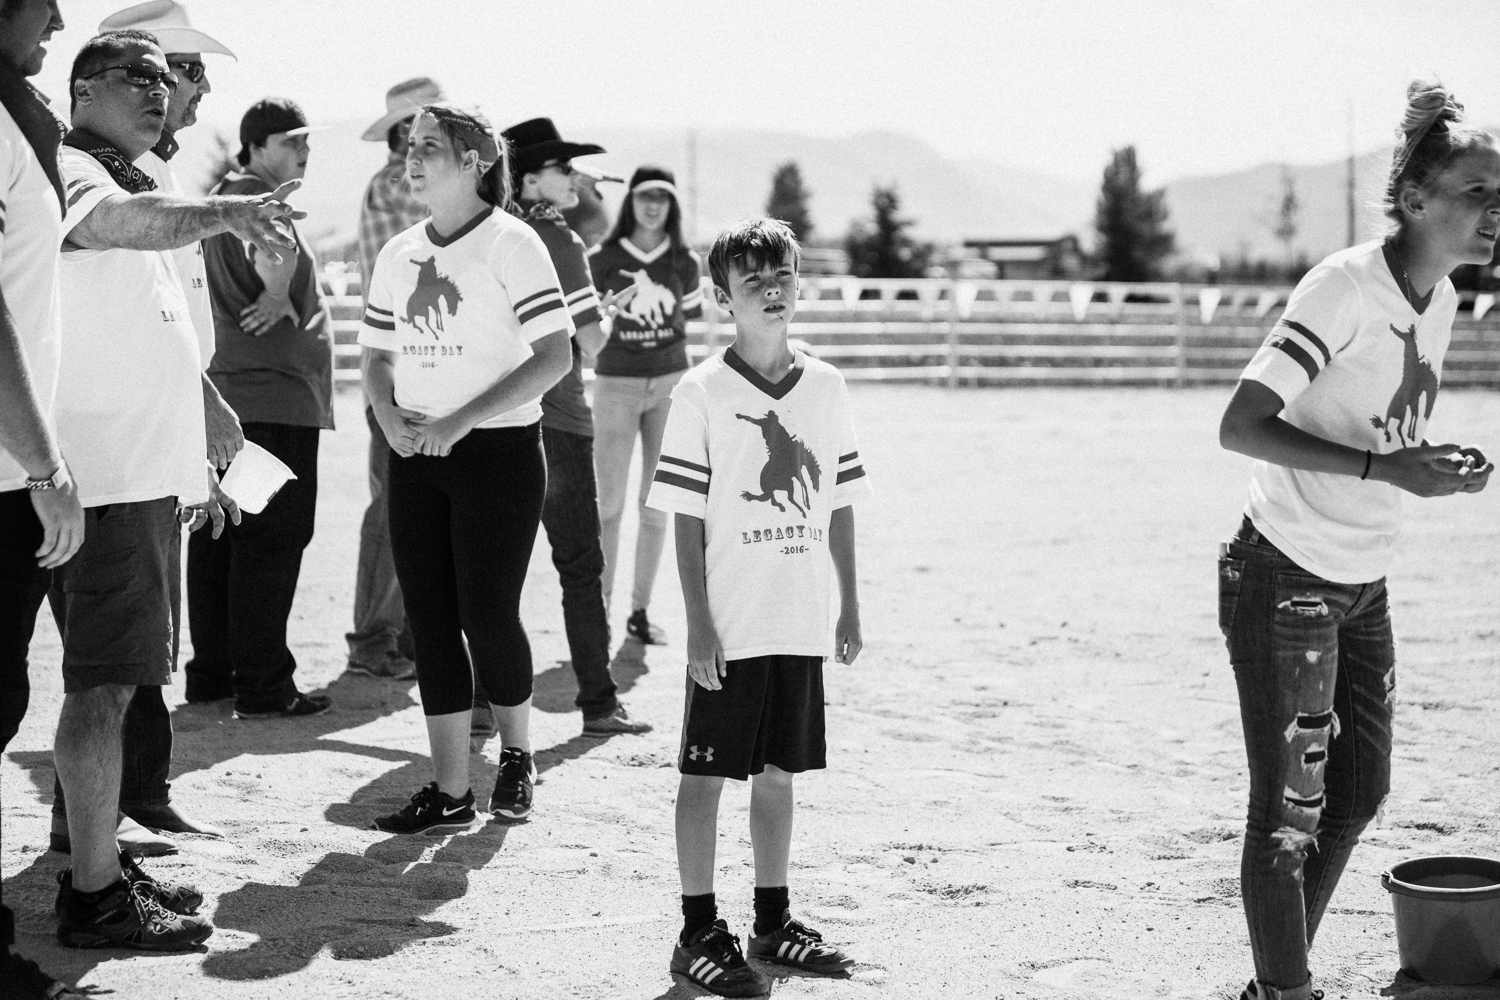 boy-waiting-for-next-event-at-legacy-days-rodeo-2016-heber-ut